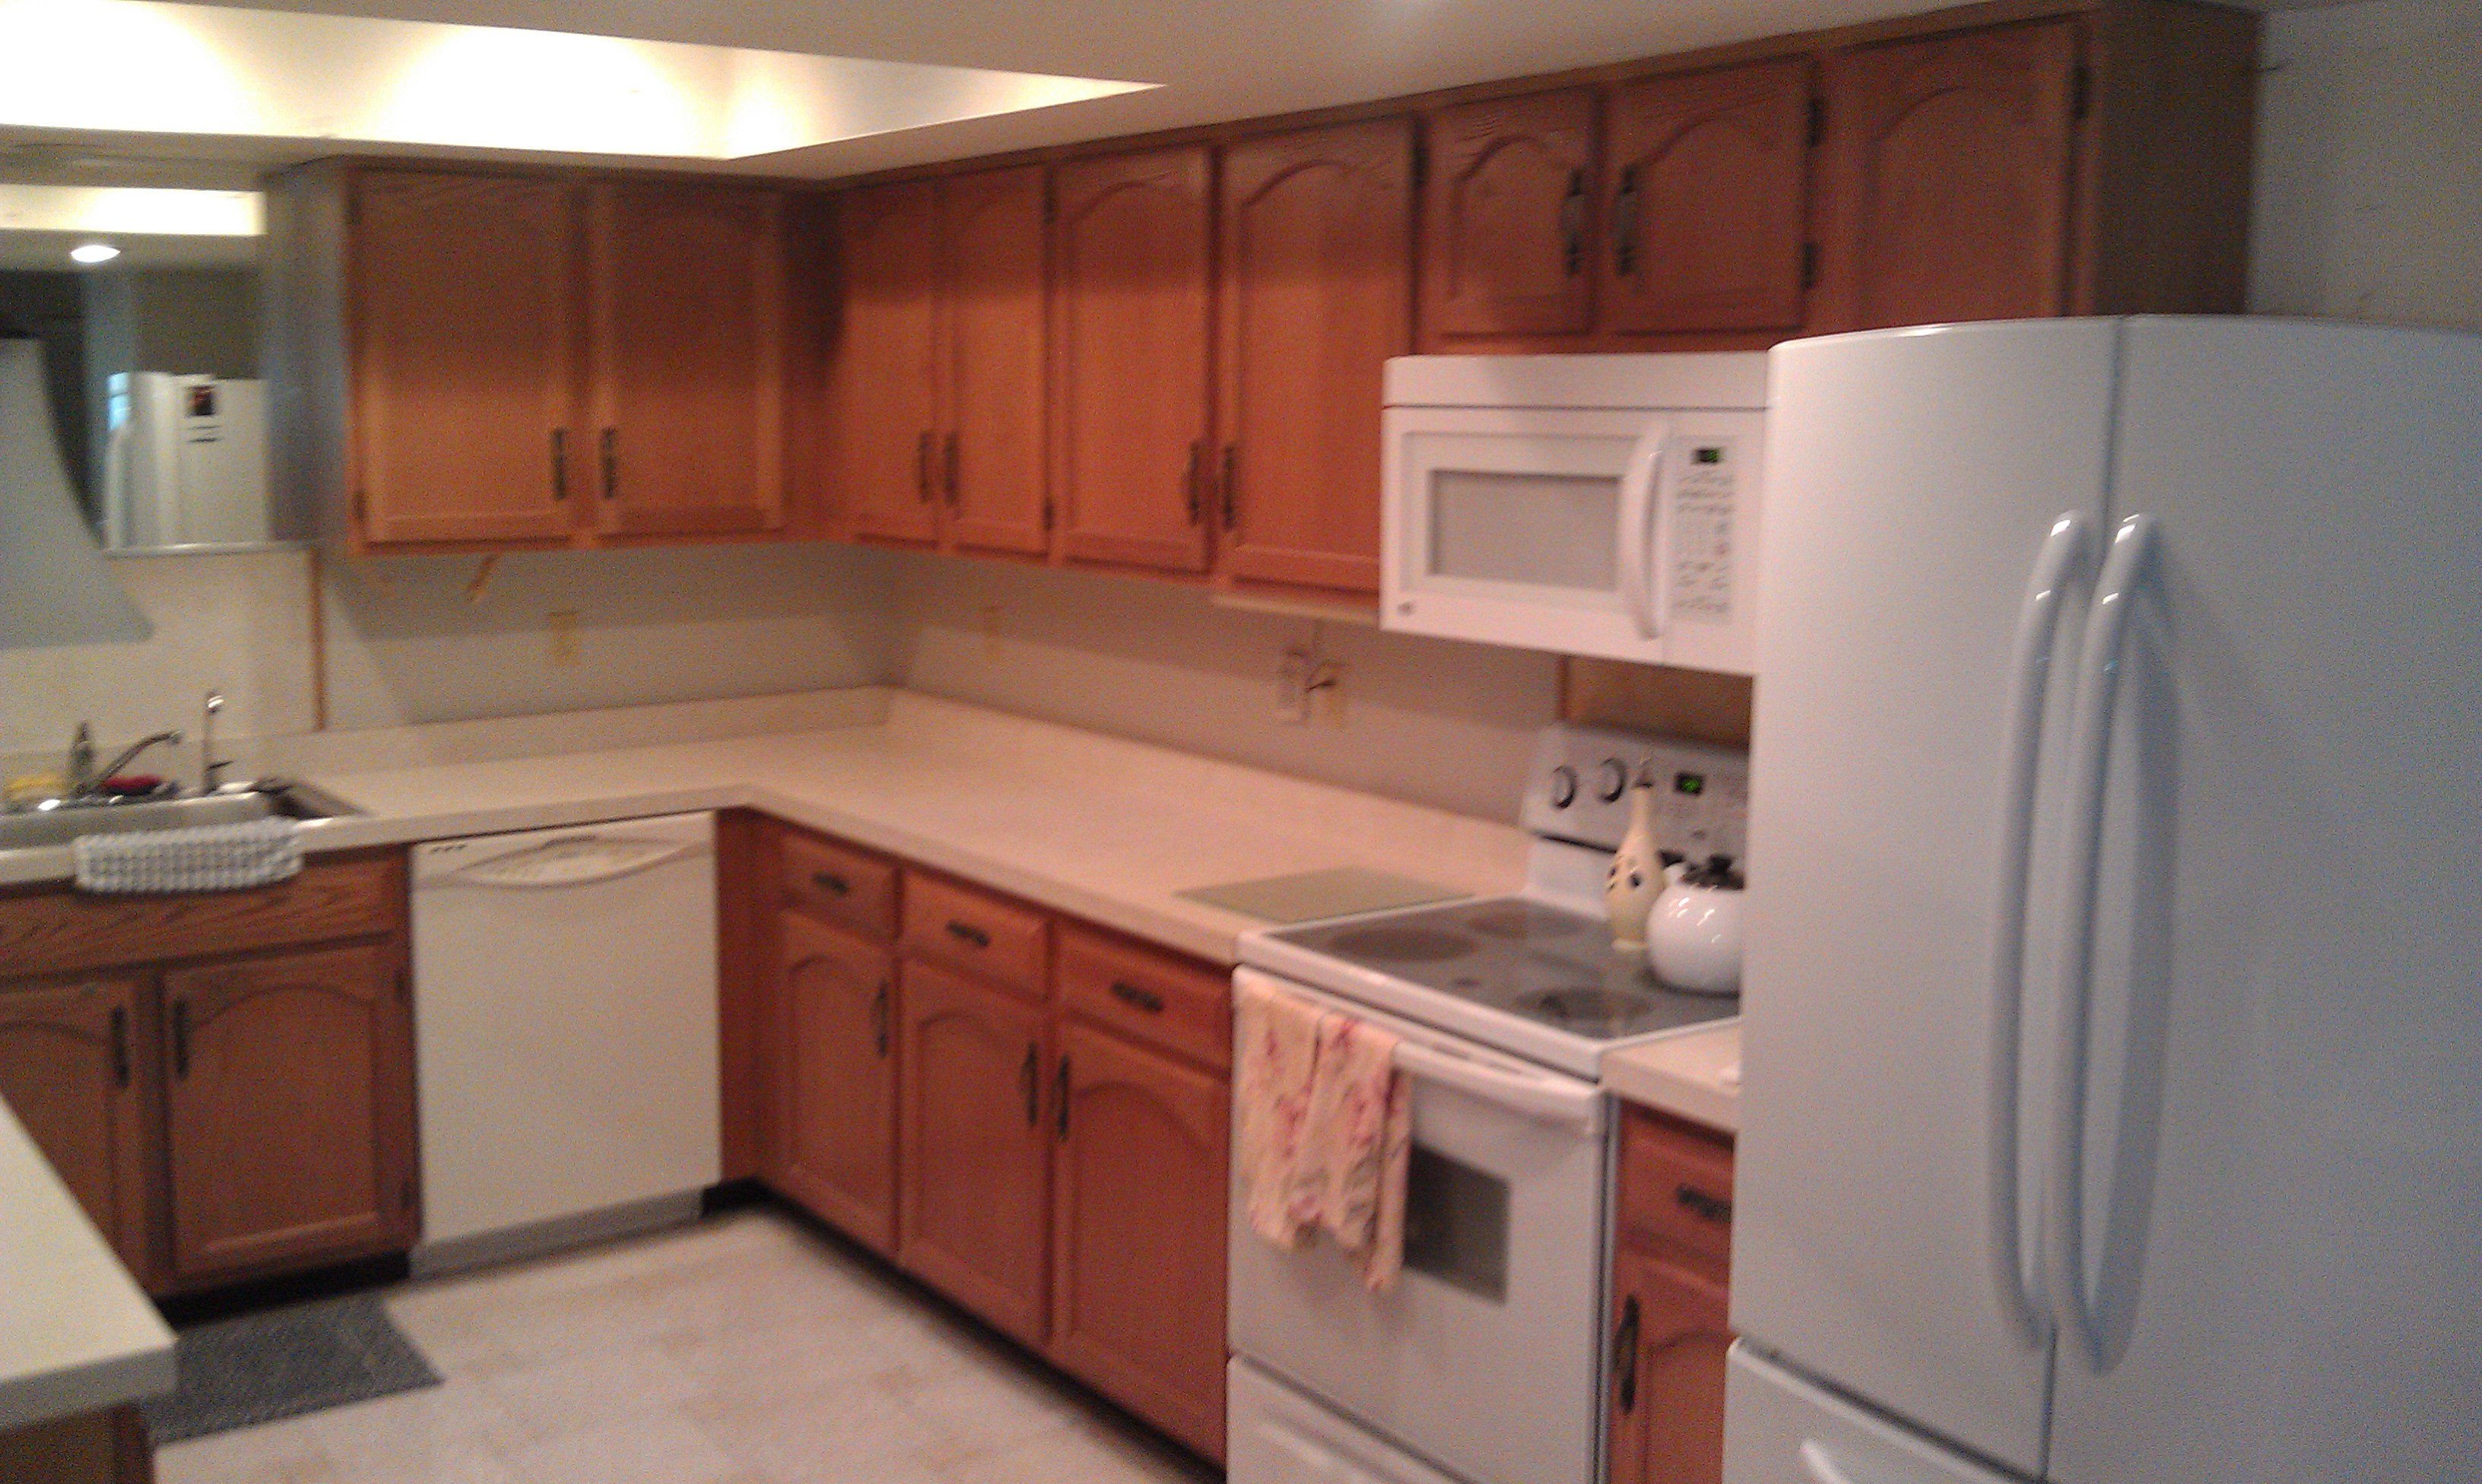 repaint cabinets by Burnett Painting